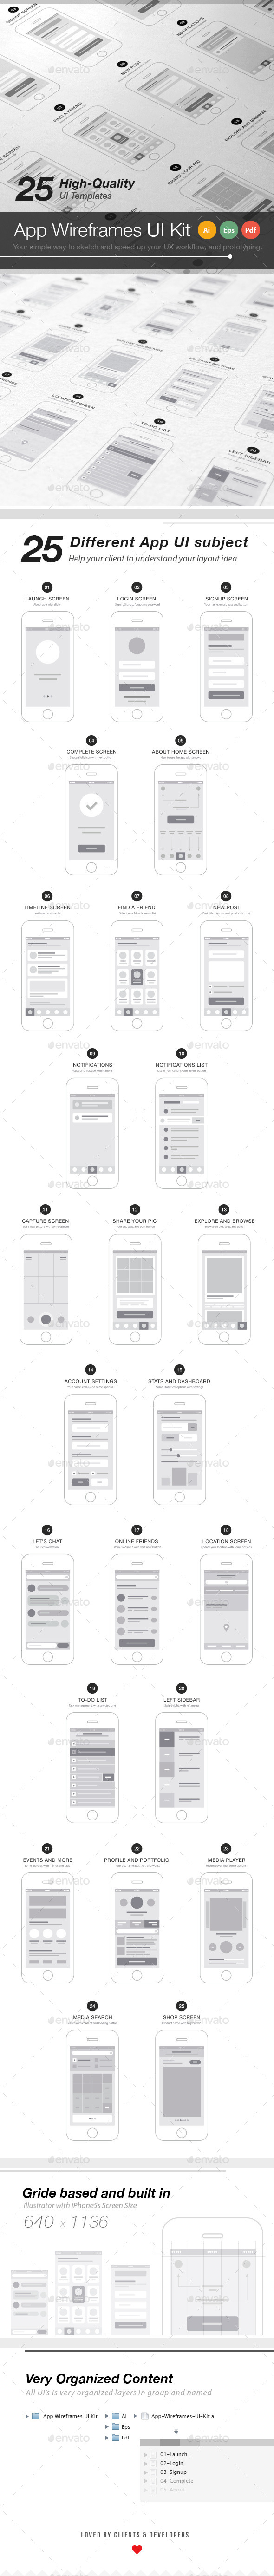 GraphicRiver App Wireframes UI Kit 8833833